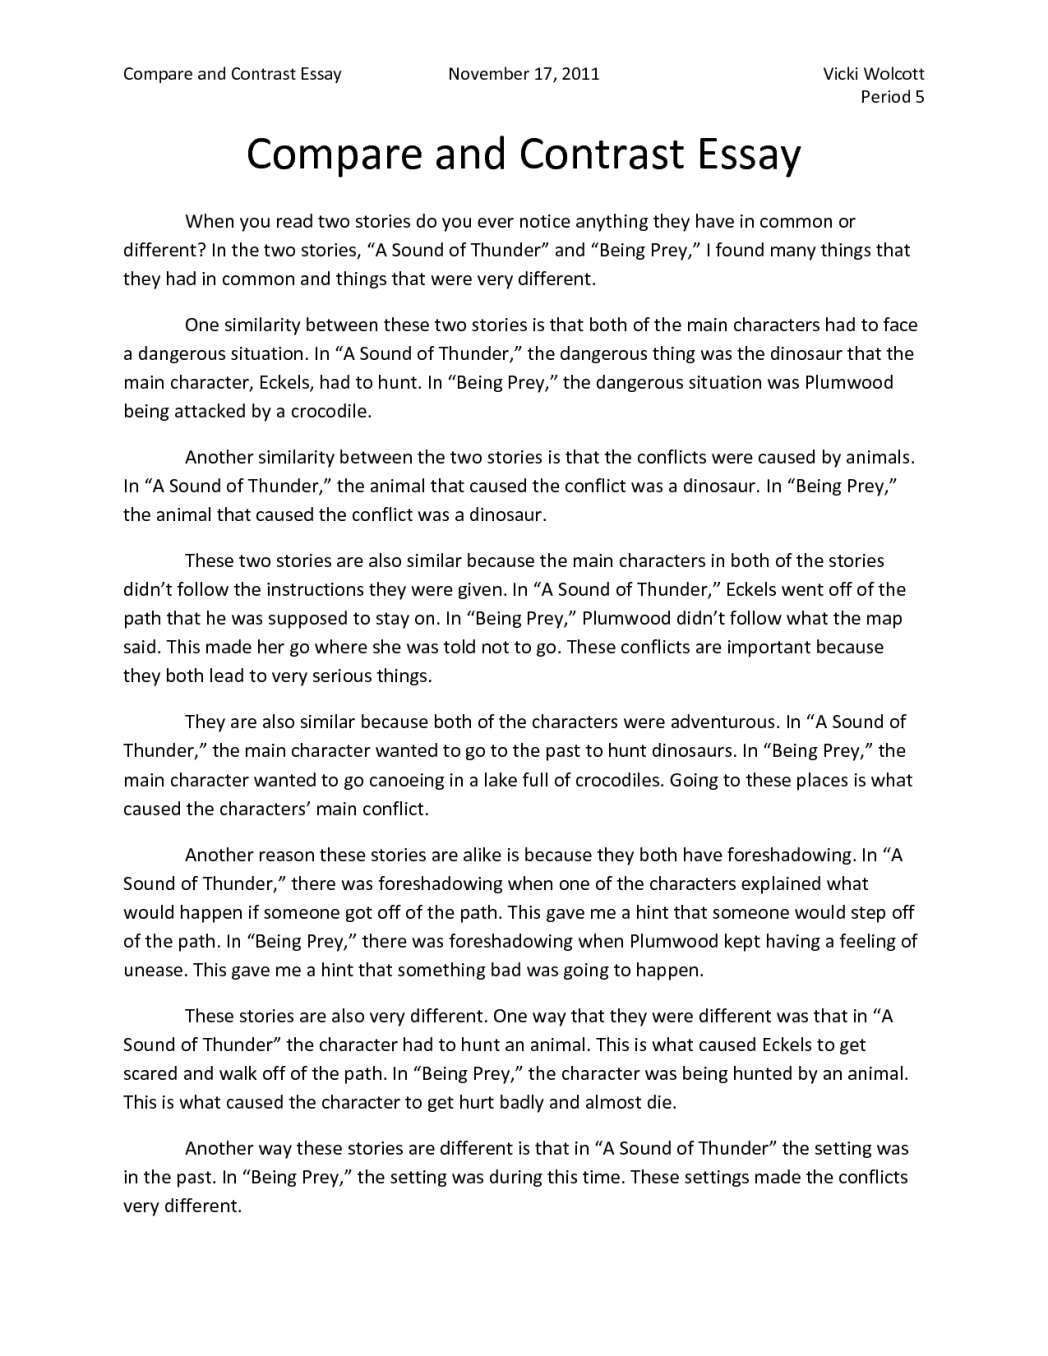 002 Contrast Essay Example Essays Writing Comparison And Of Compare Examples Middle School High Vs College 4th Grade Food Pdf Block Format Fantastic Topics Title Ideas Thesis Full